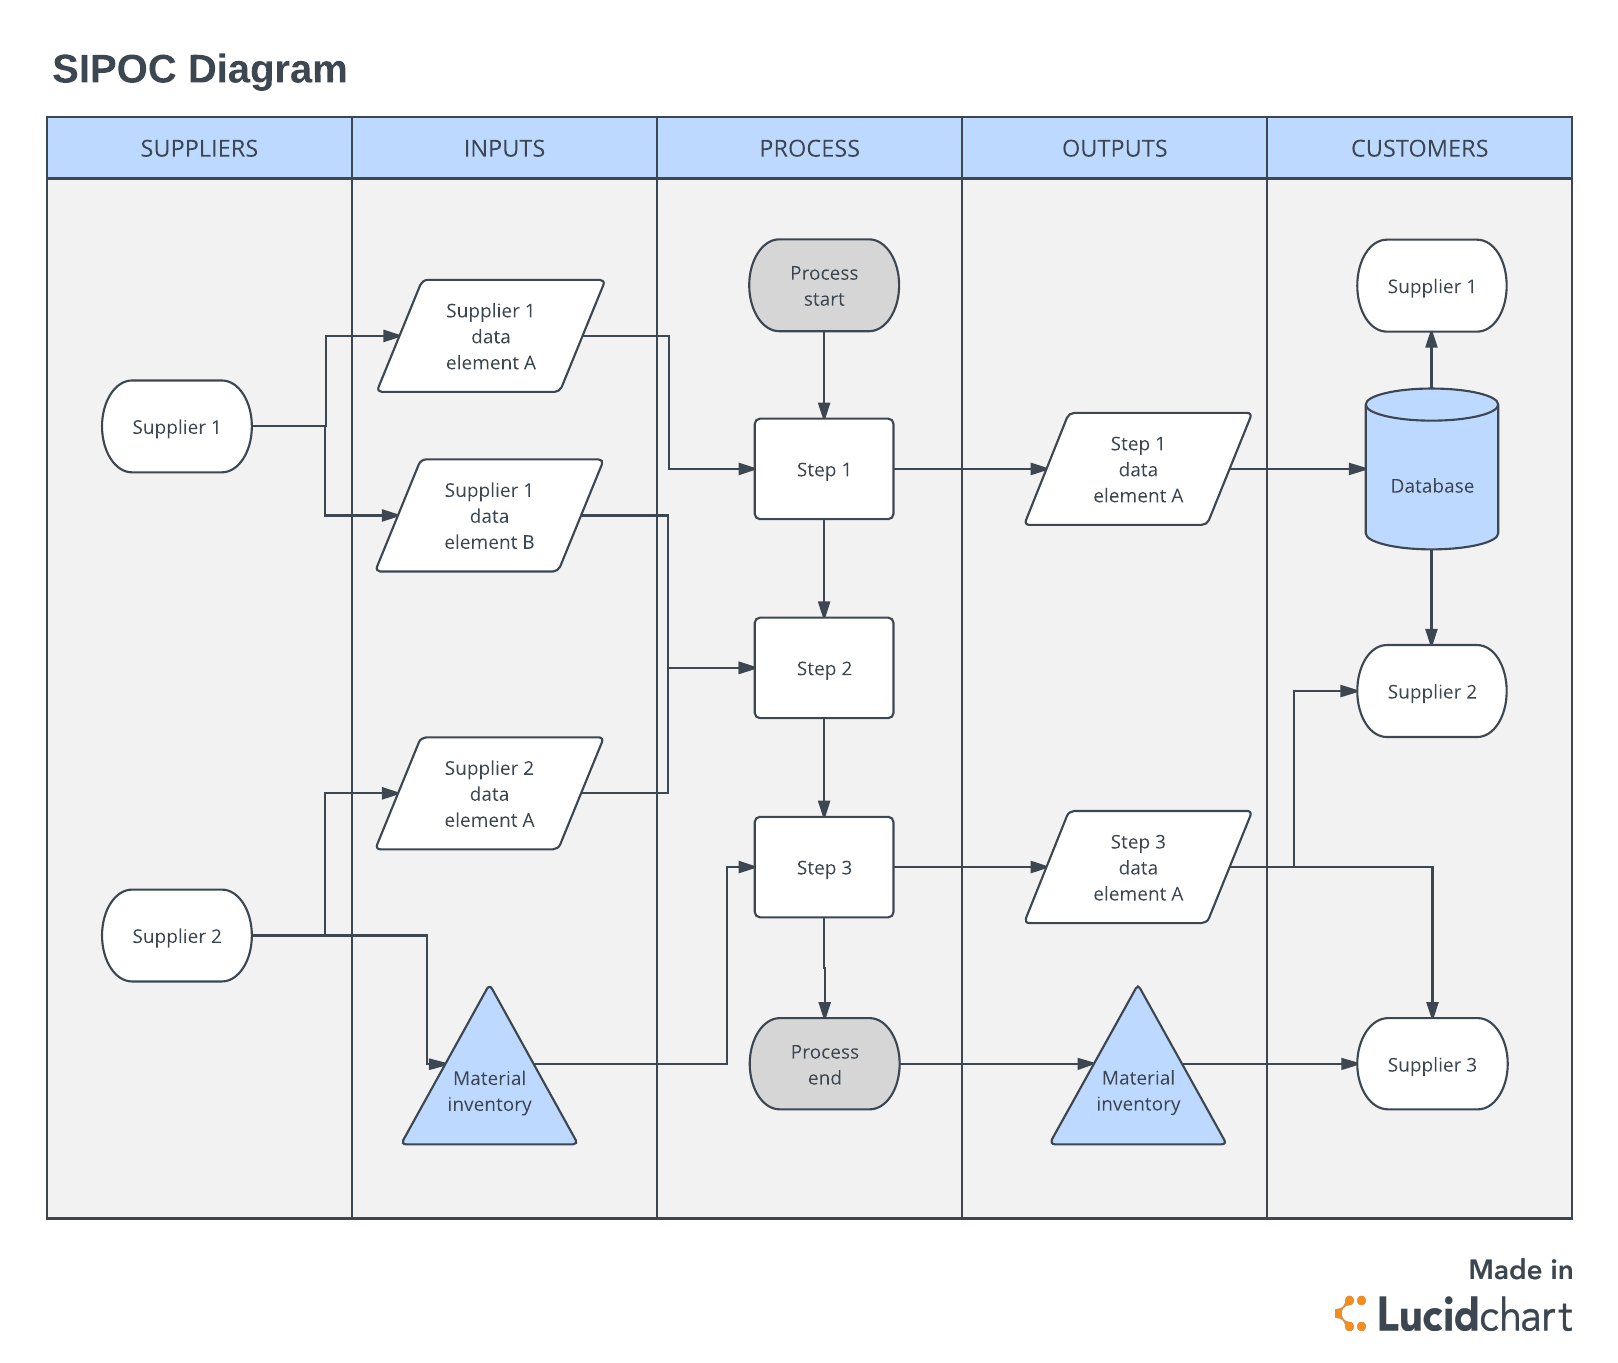 hight resolution of sipoc diagram template click on image to modify online